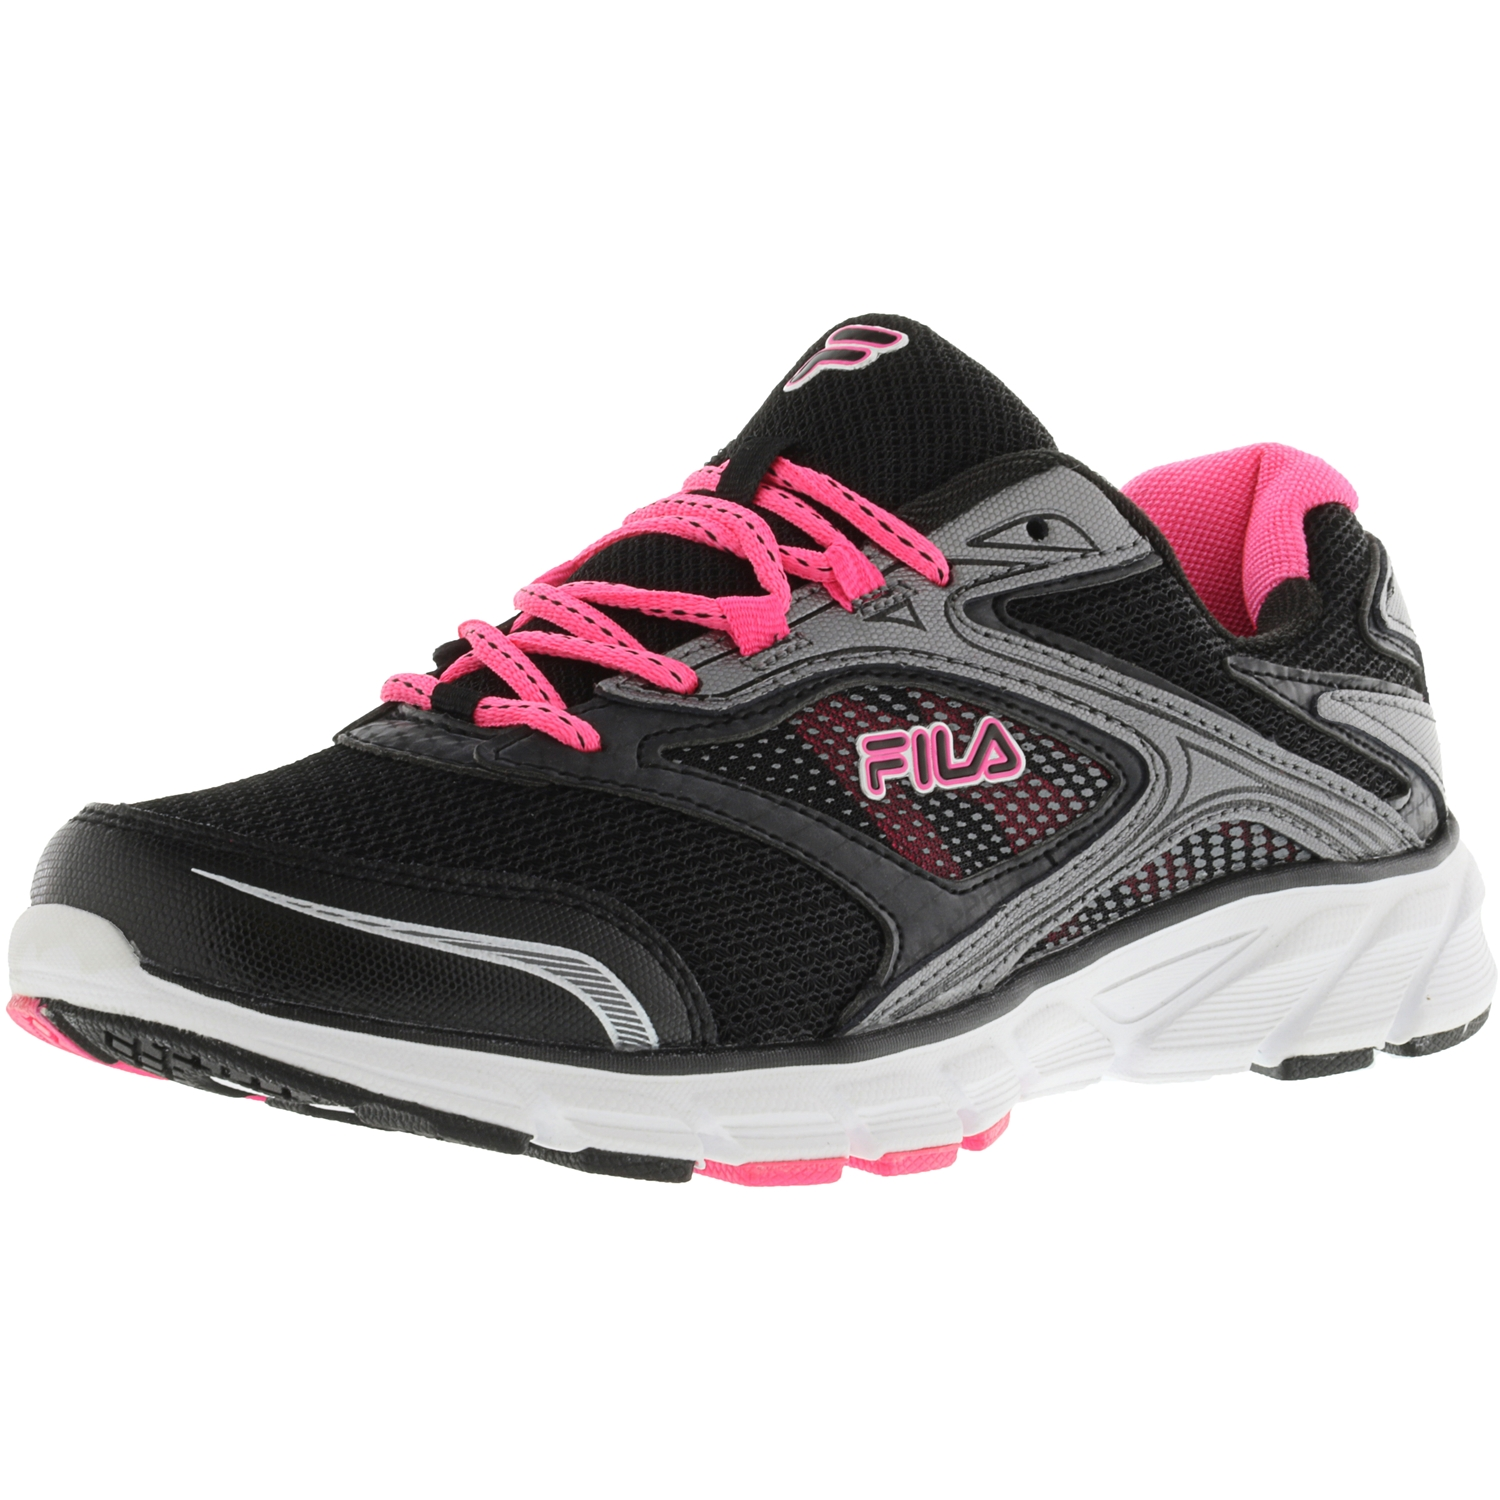 Fila Women's Stir Up Black   Dark Silver Knockout Pink Ankle-High Running Shoe 10M by Fila